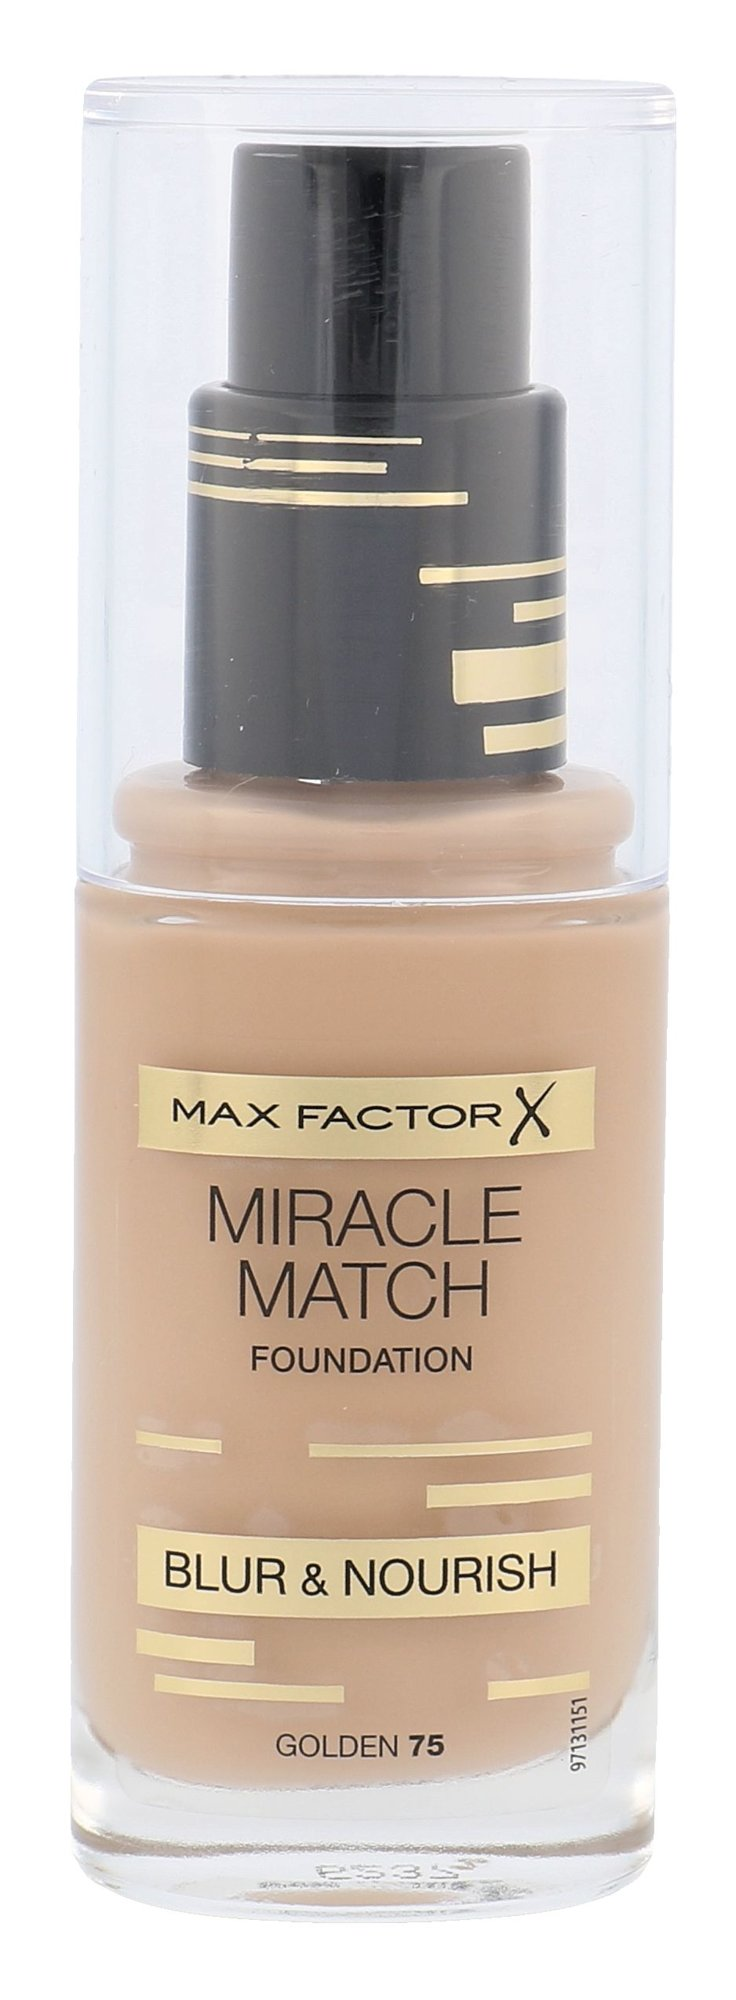 Max Factor Miracle Match Foundation Cosmetic 30ml 75 Golden